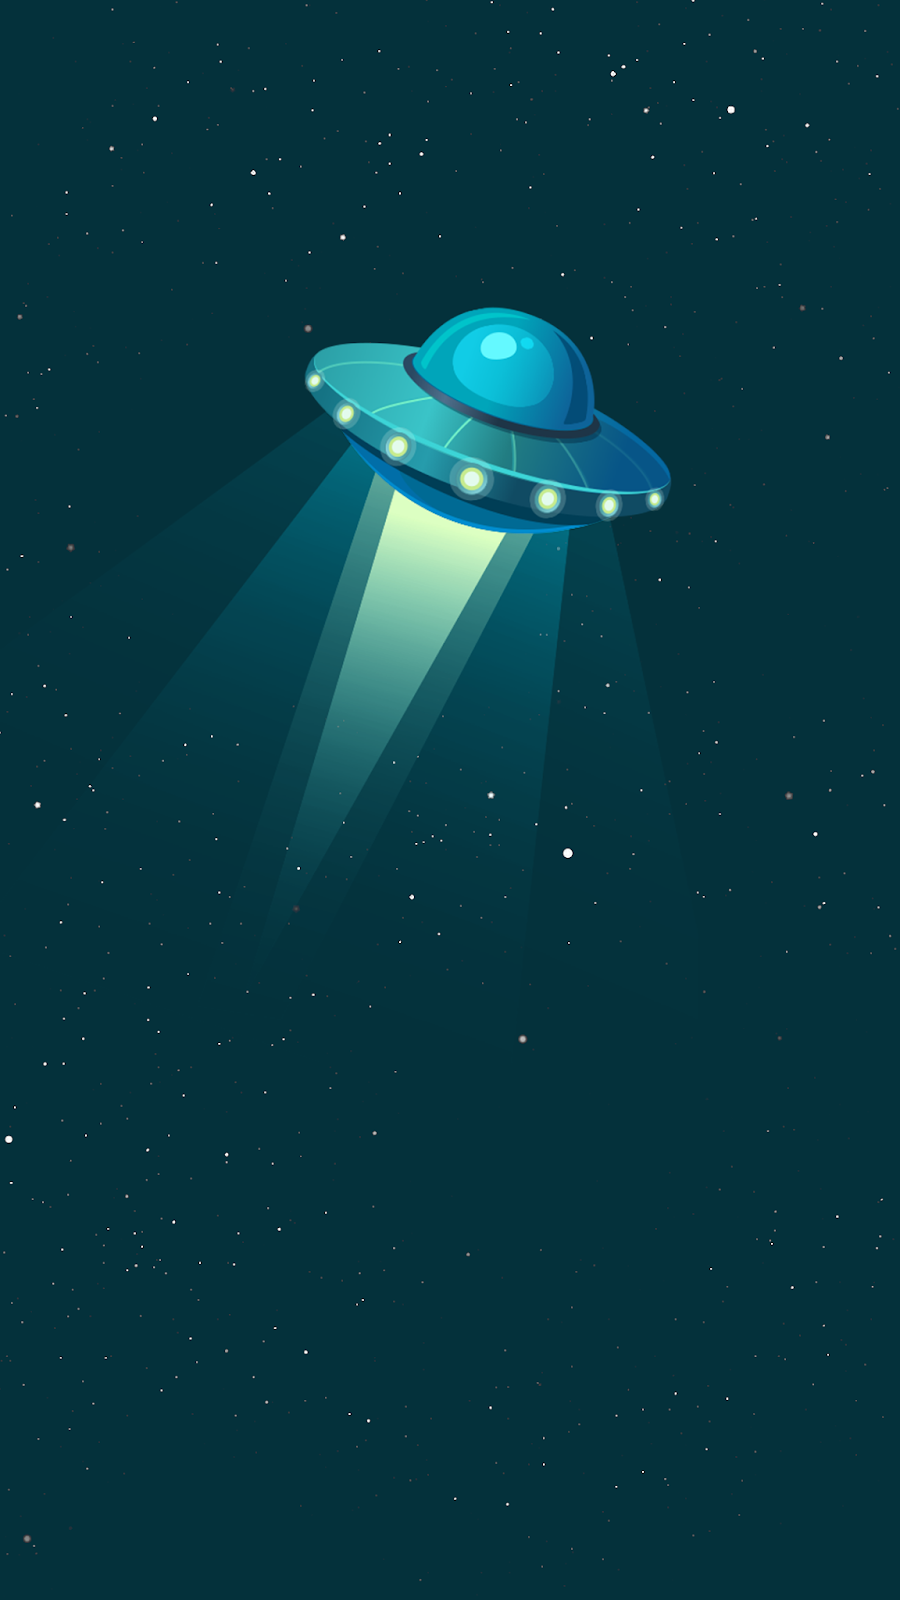 Minimalist ufo wallpaper